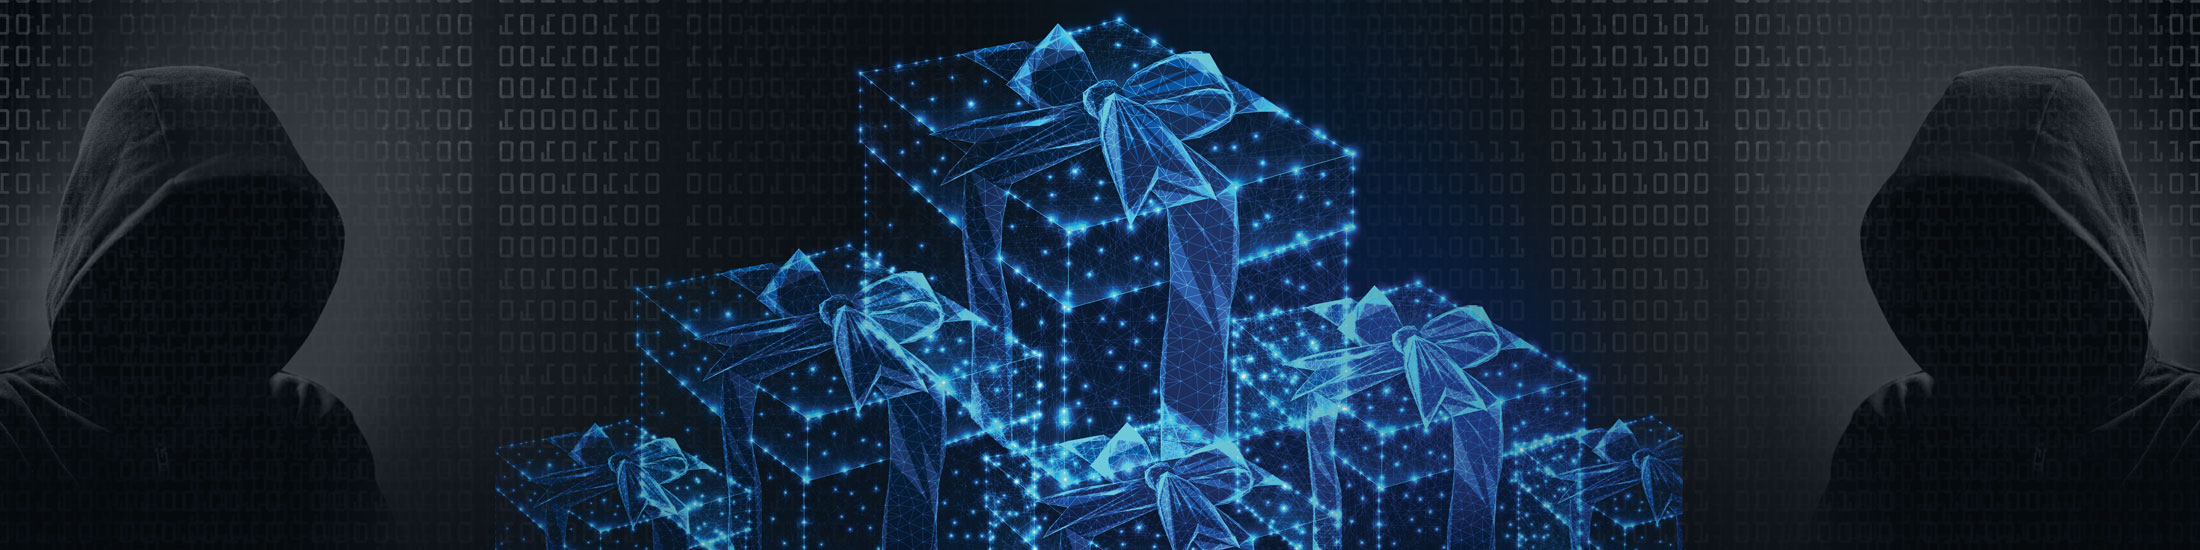 Report: Digital Is the Future of Gift Cards, But Fraud will Continue